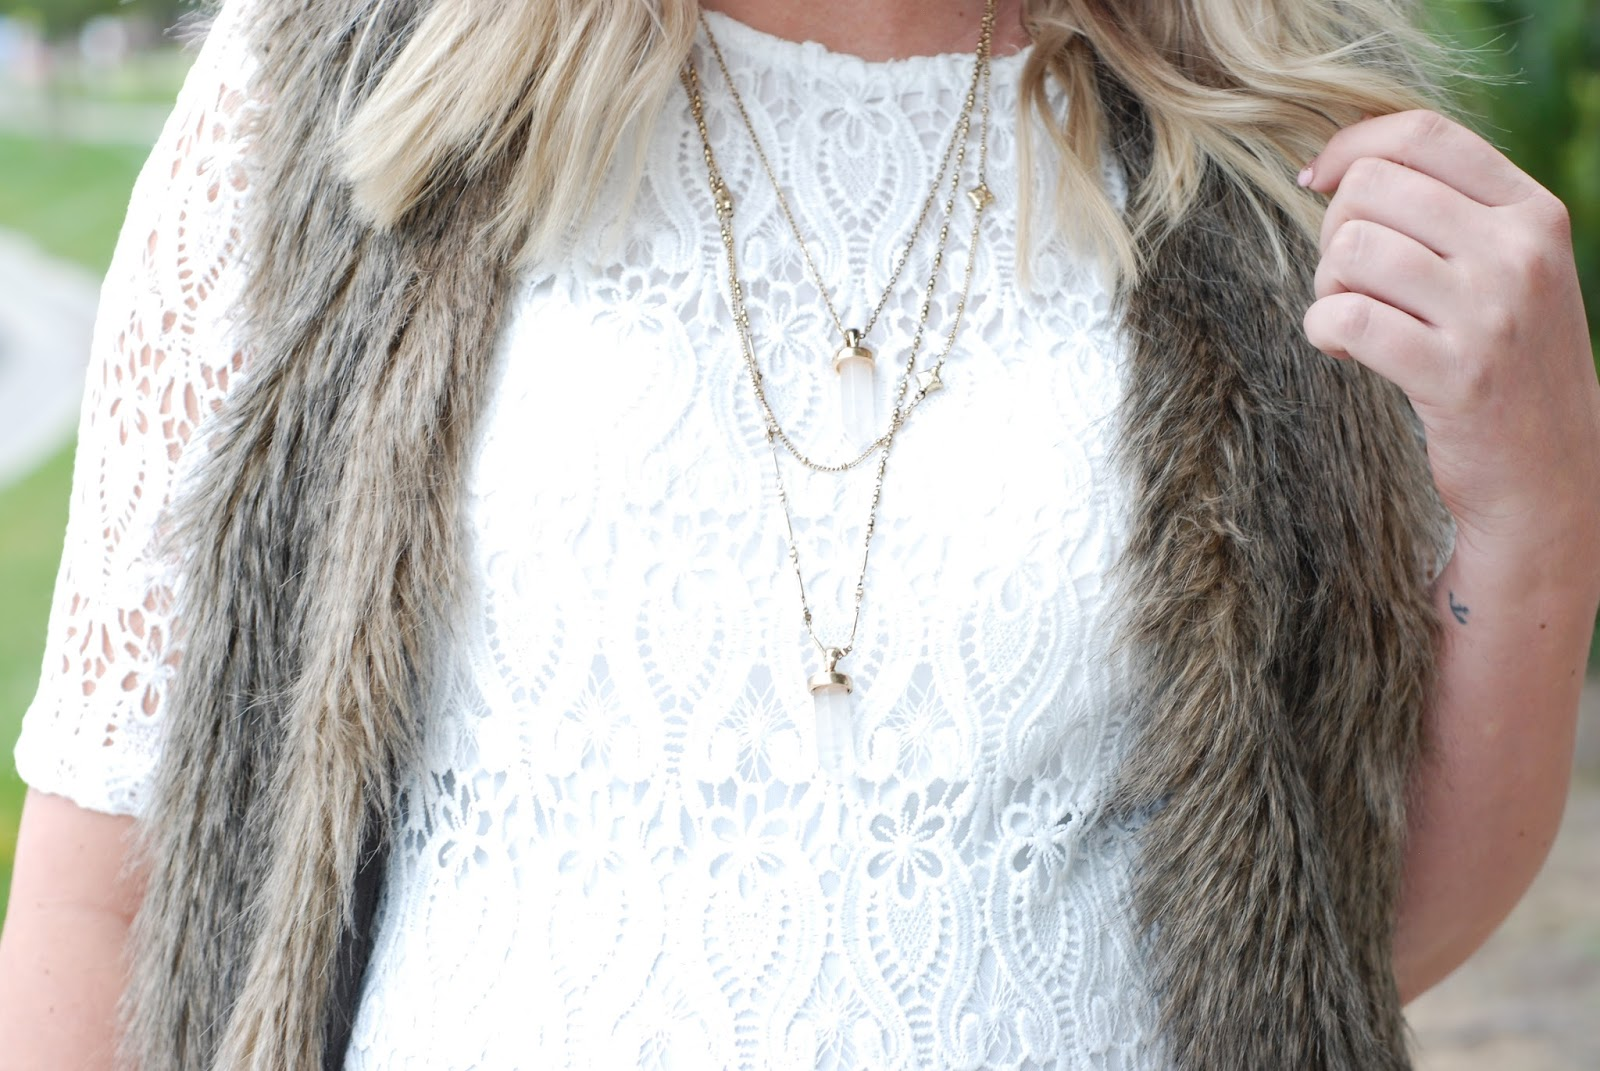 Jane Stone Jewelry, Fur Vest, Lace